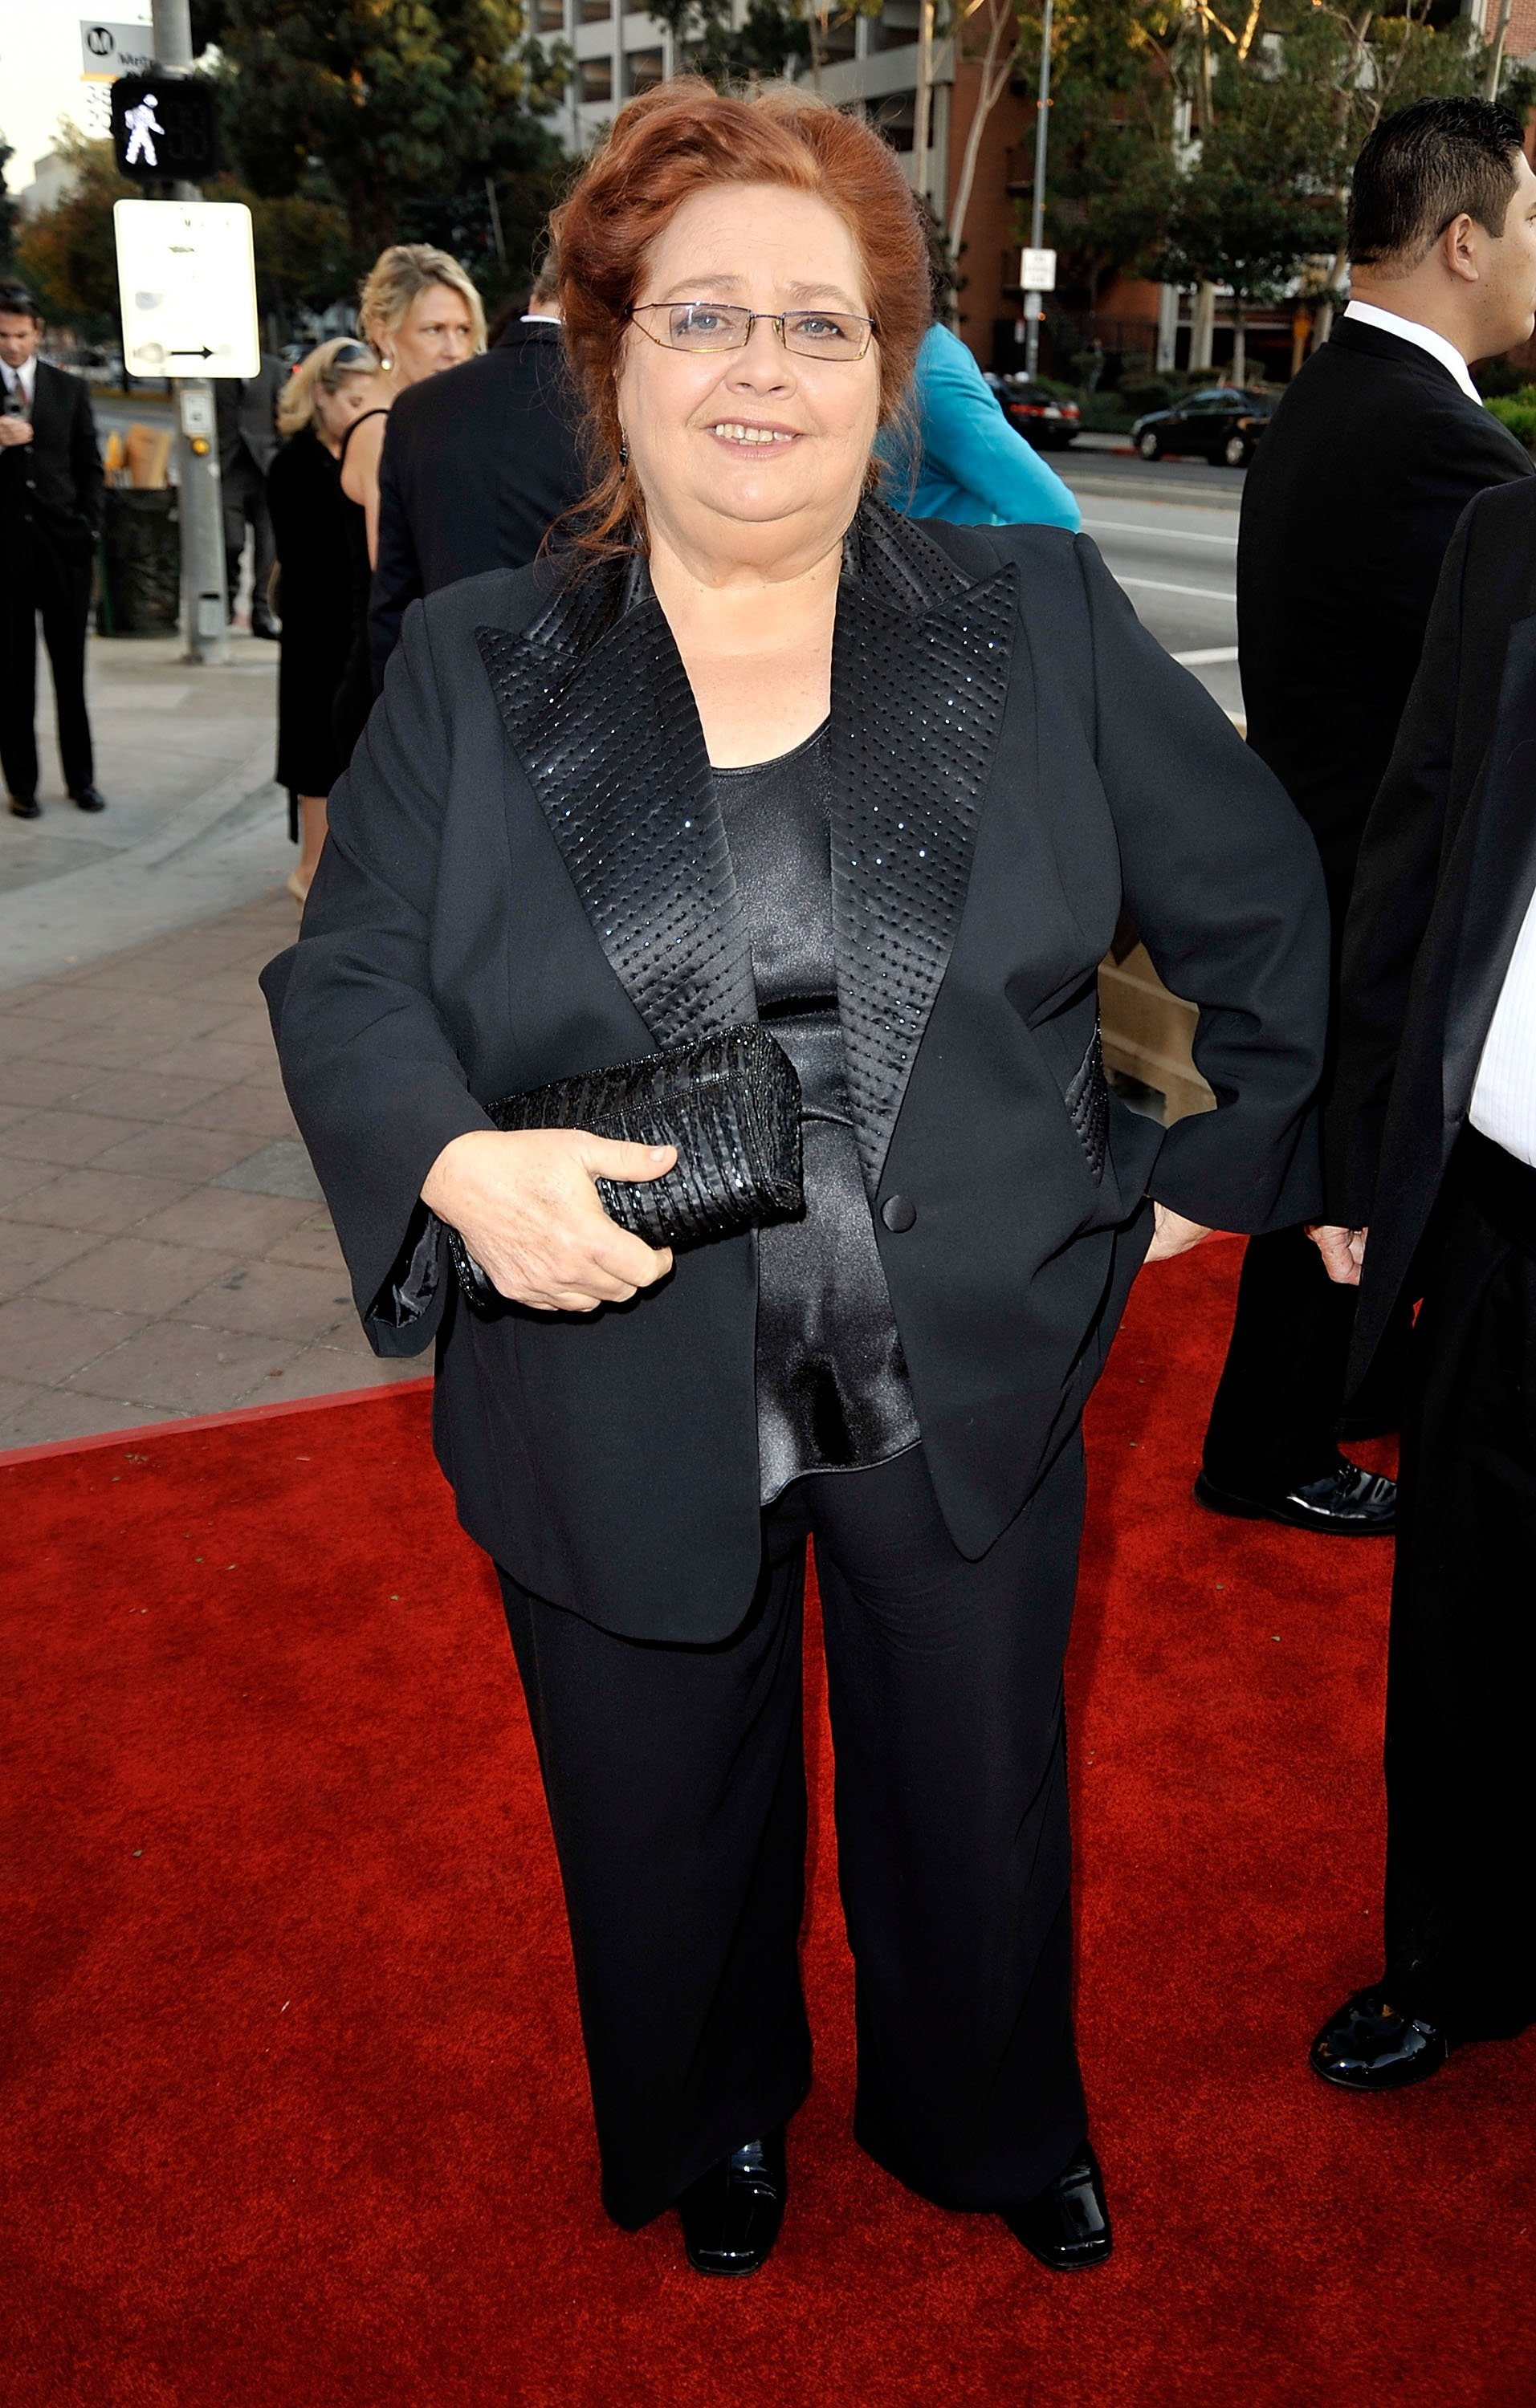 Conchata Ferrell attends the People's Choice Awards in Los Angeles, California on January 7, 2009 | Photo: Getty Images